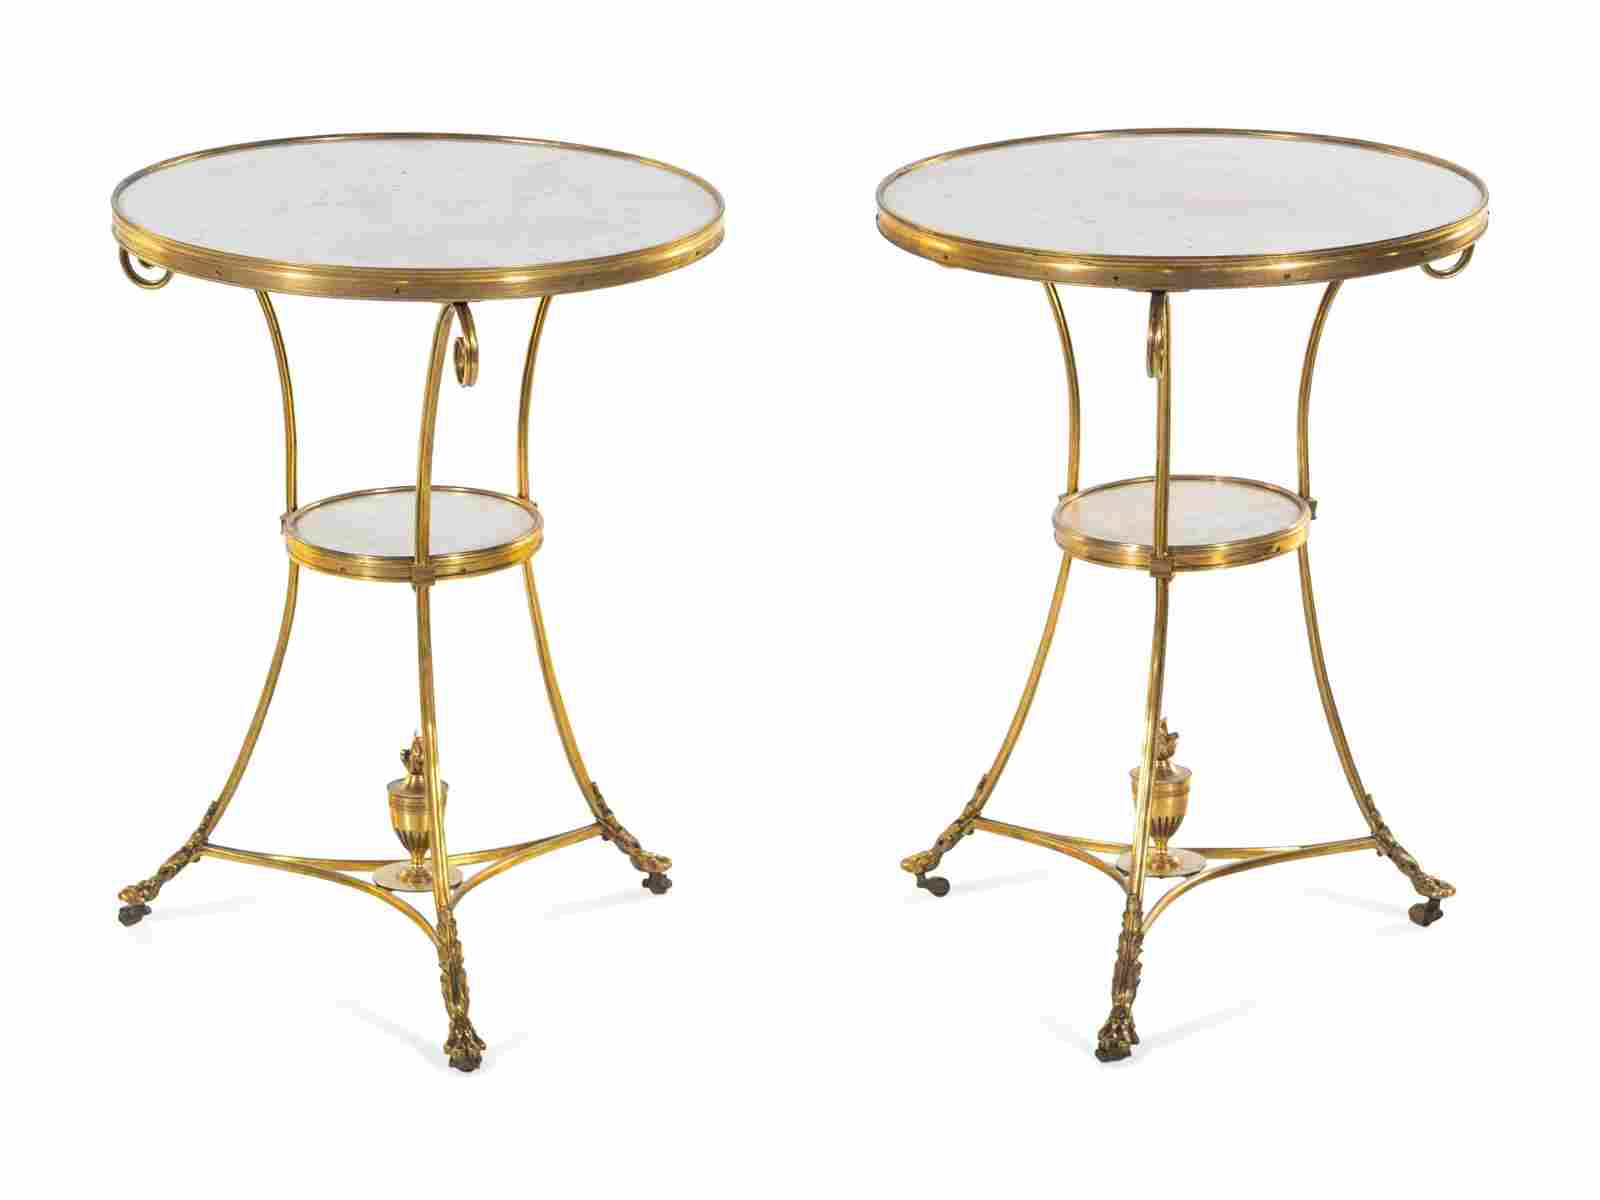 A Pair of Neoclassical Gilt Bronze and Marble-Top